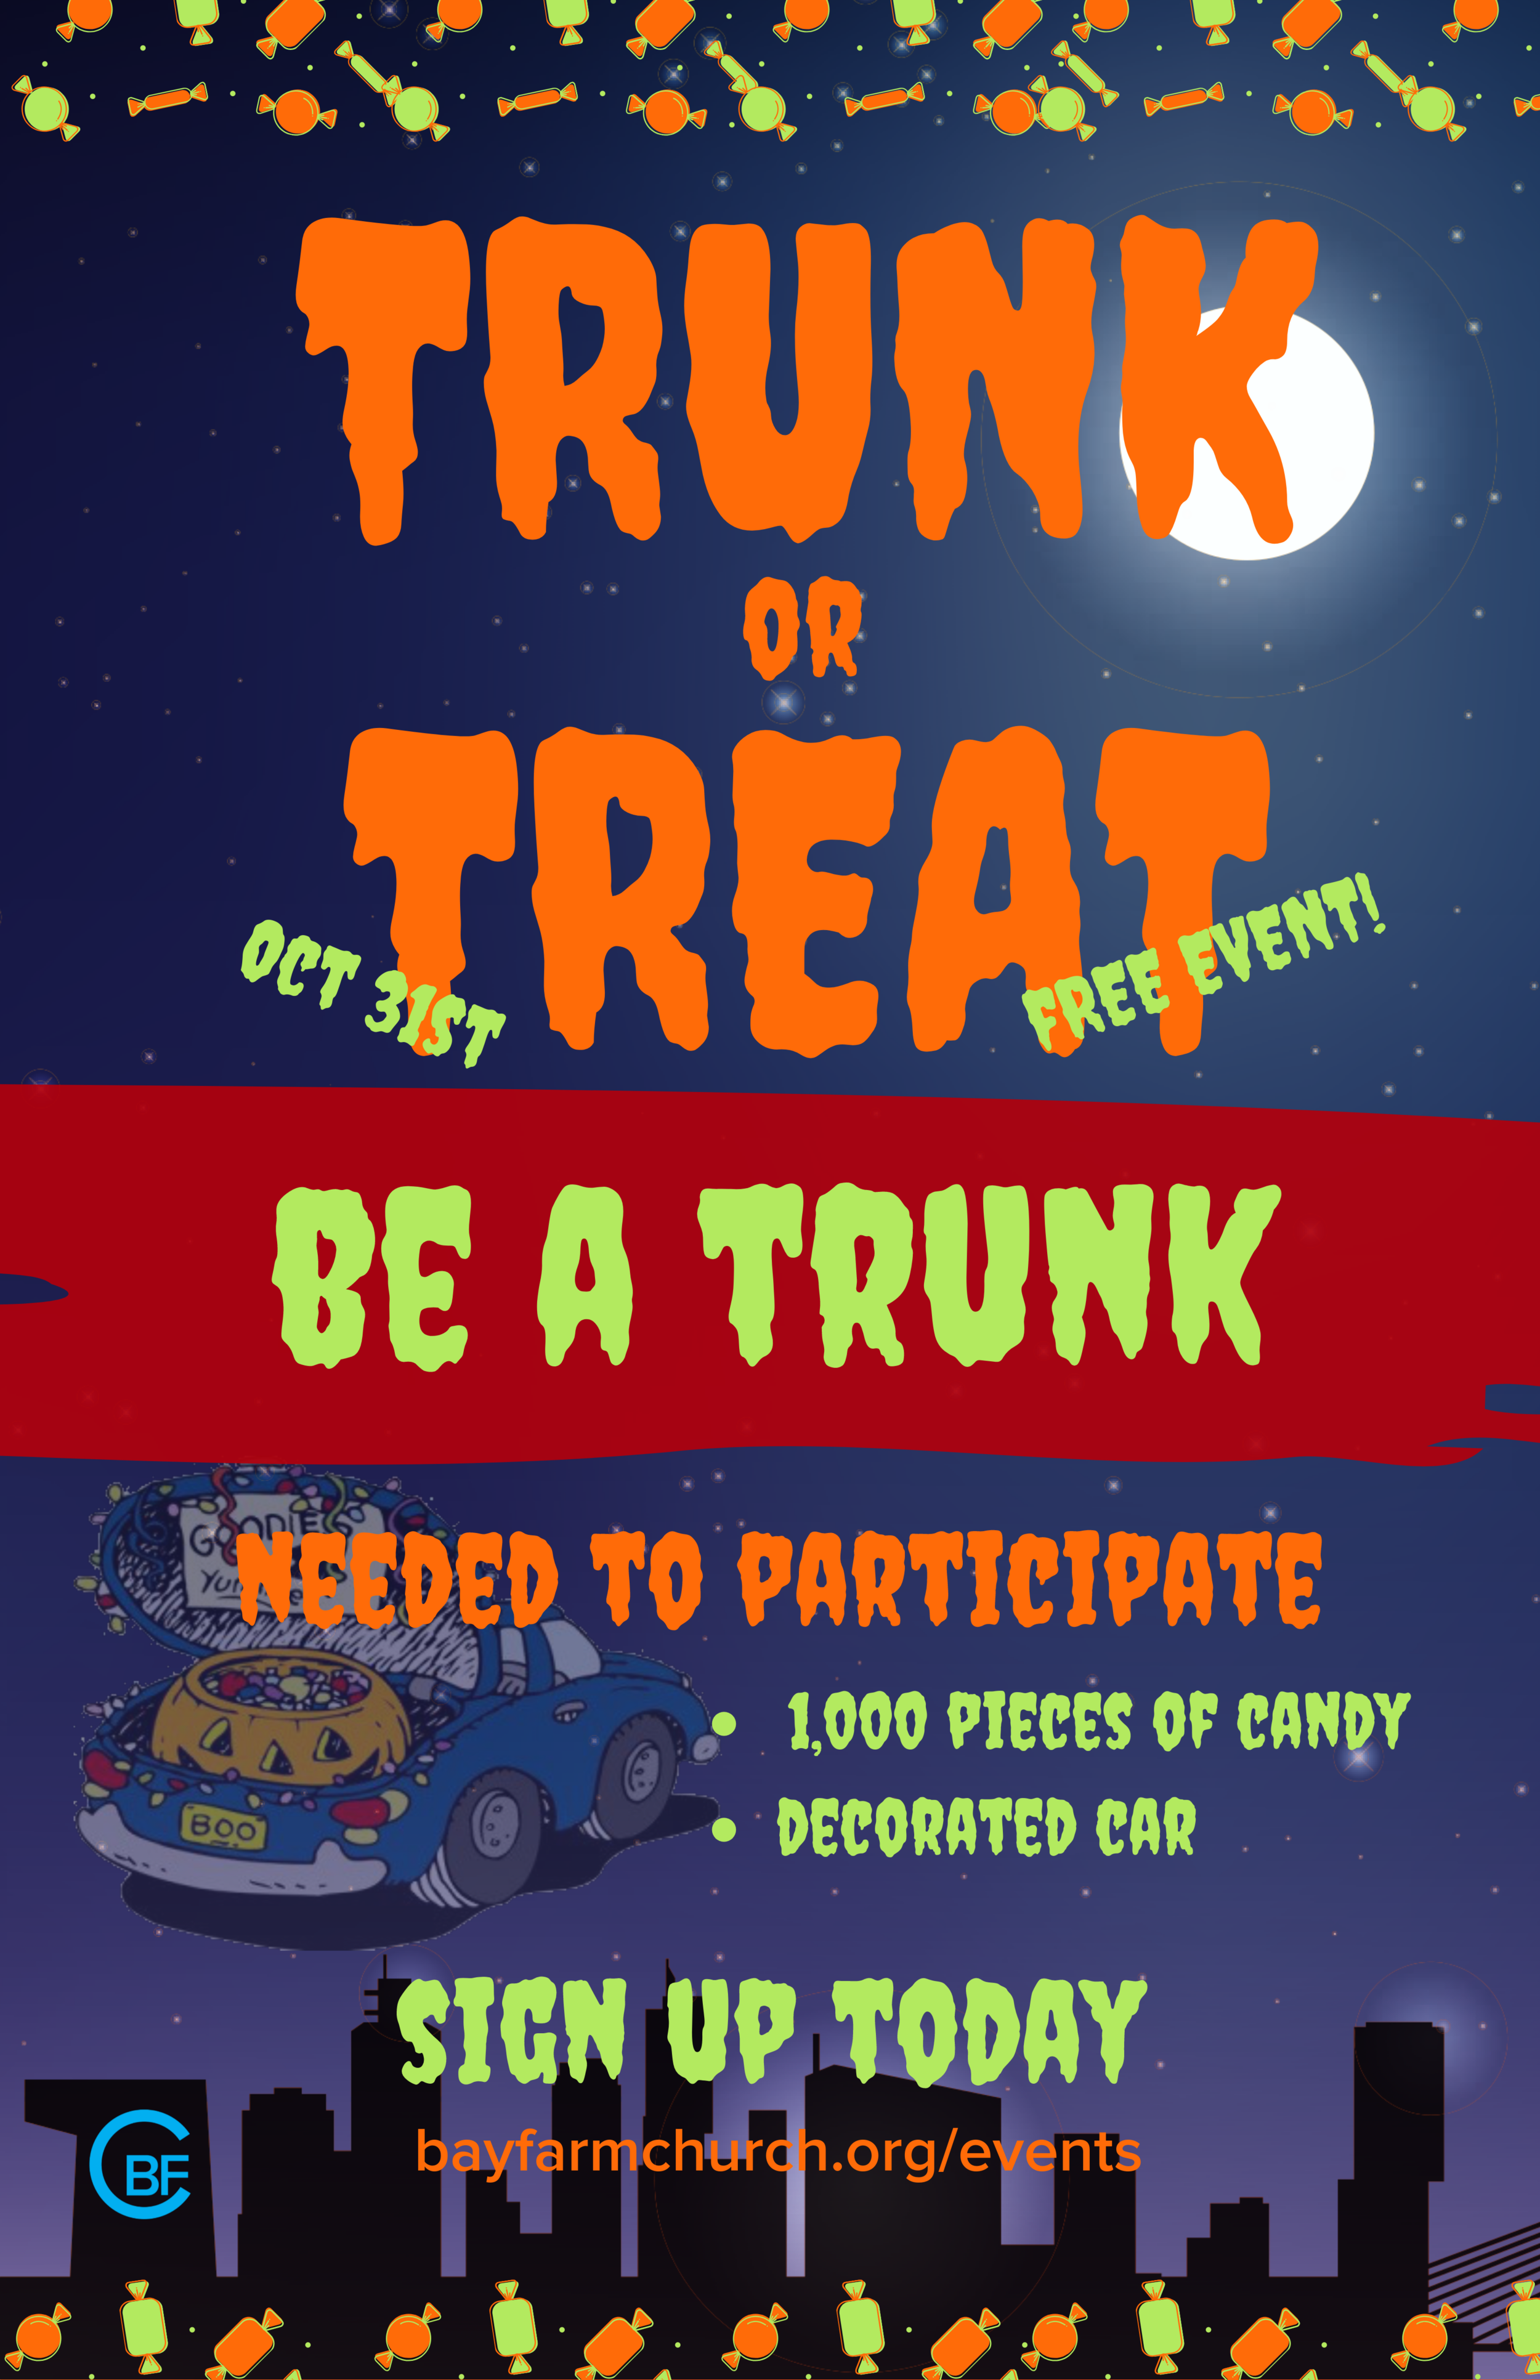 Trunk or Treat FLYER 3300x5100.png